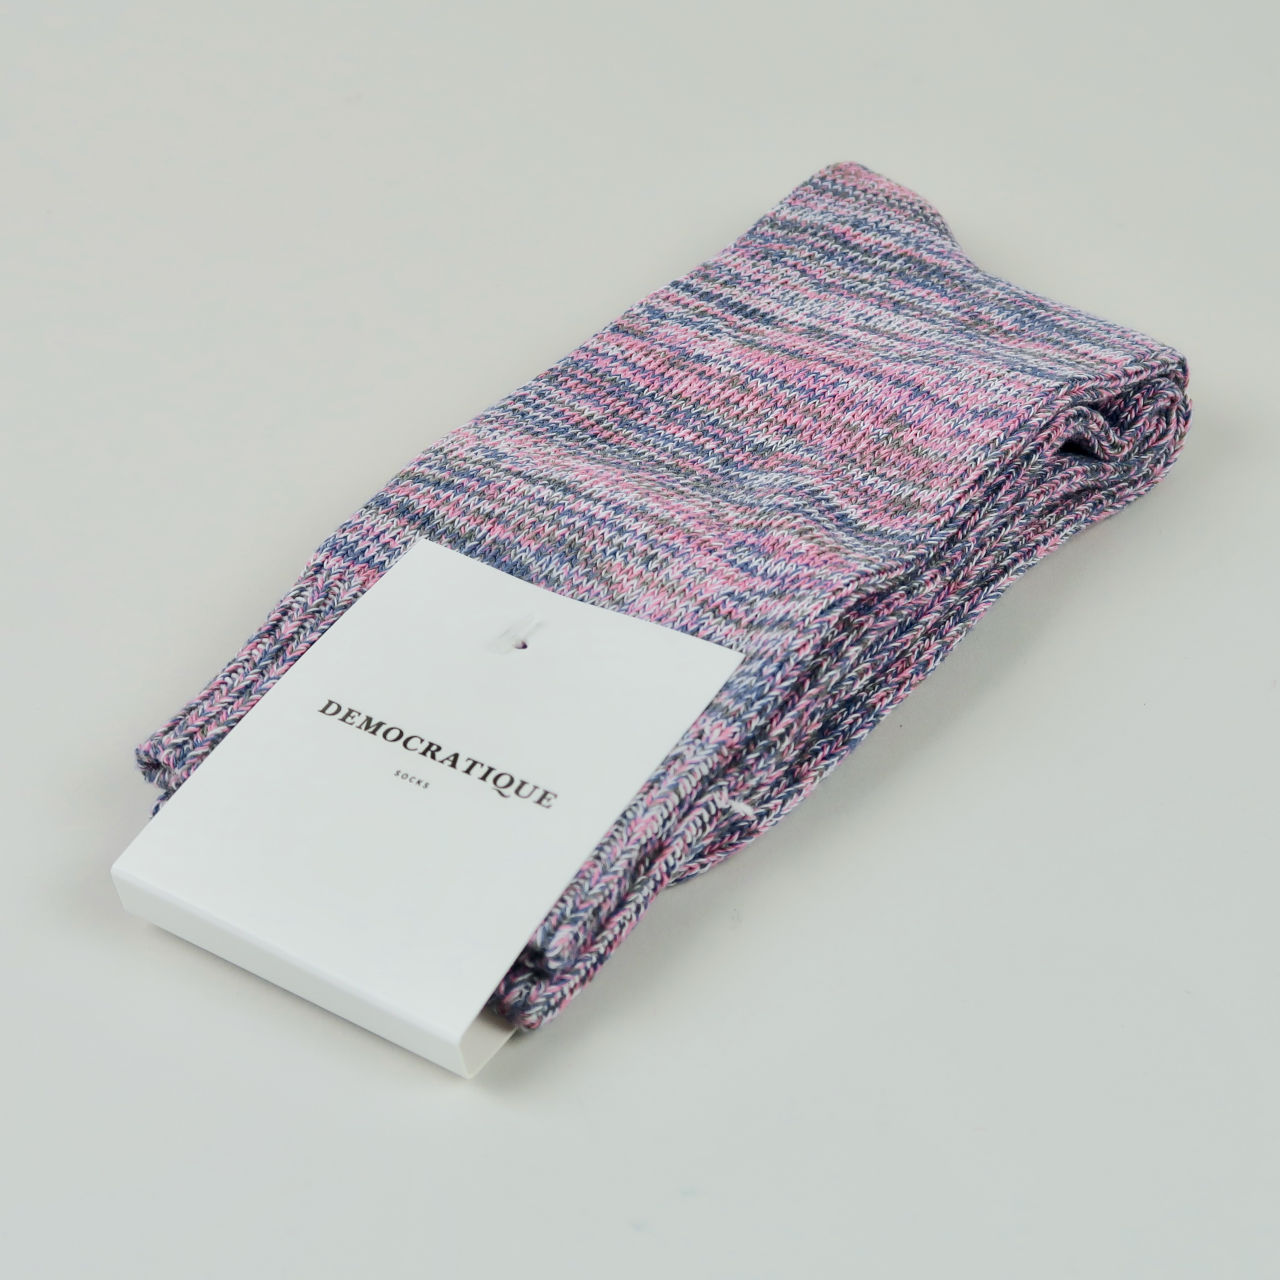 Men's Socks - Relax Chunky Knit - Pink Fleur/Army/Off White/Light Diesel